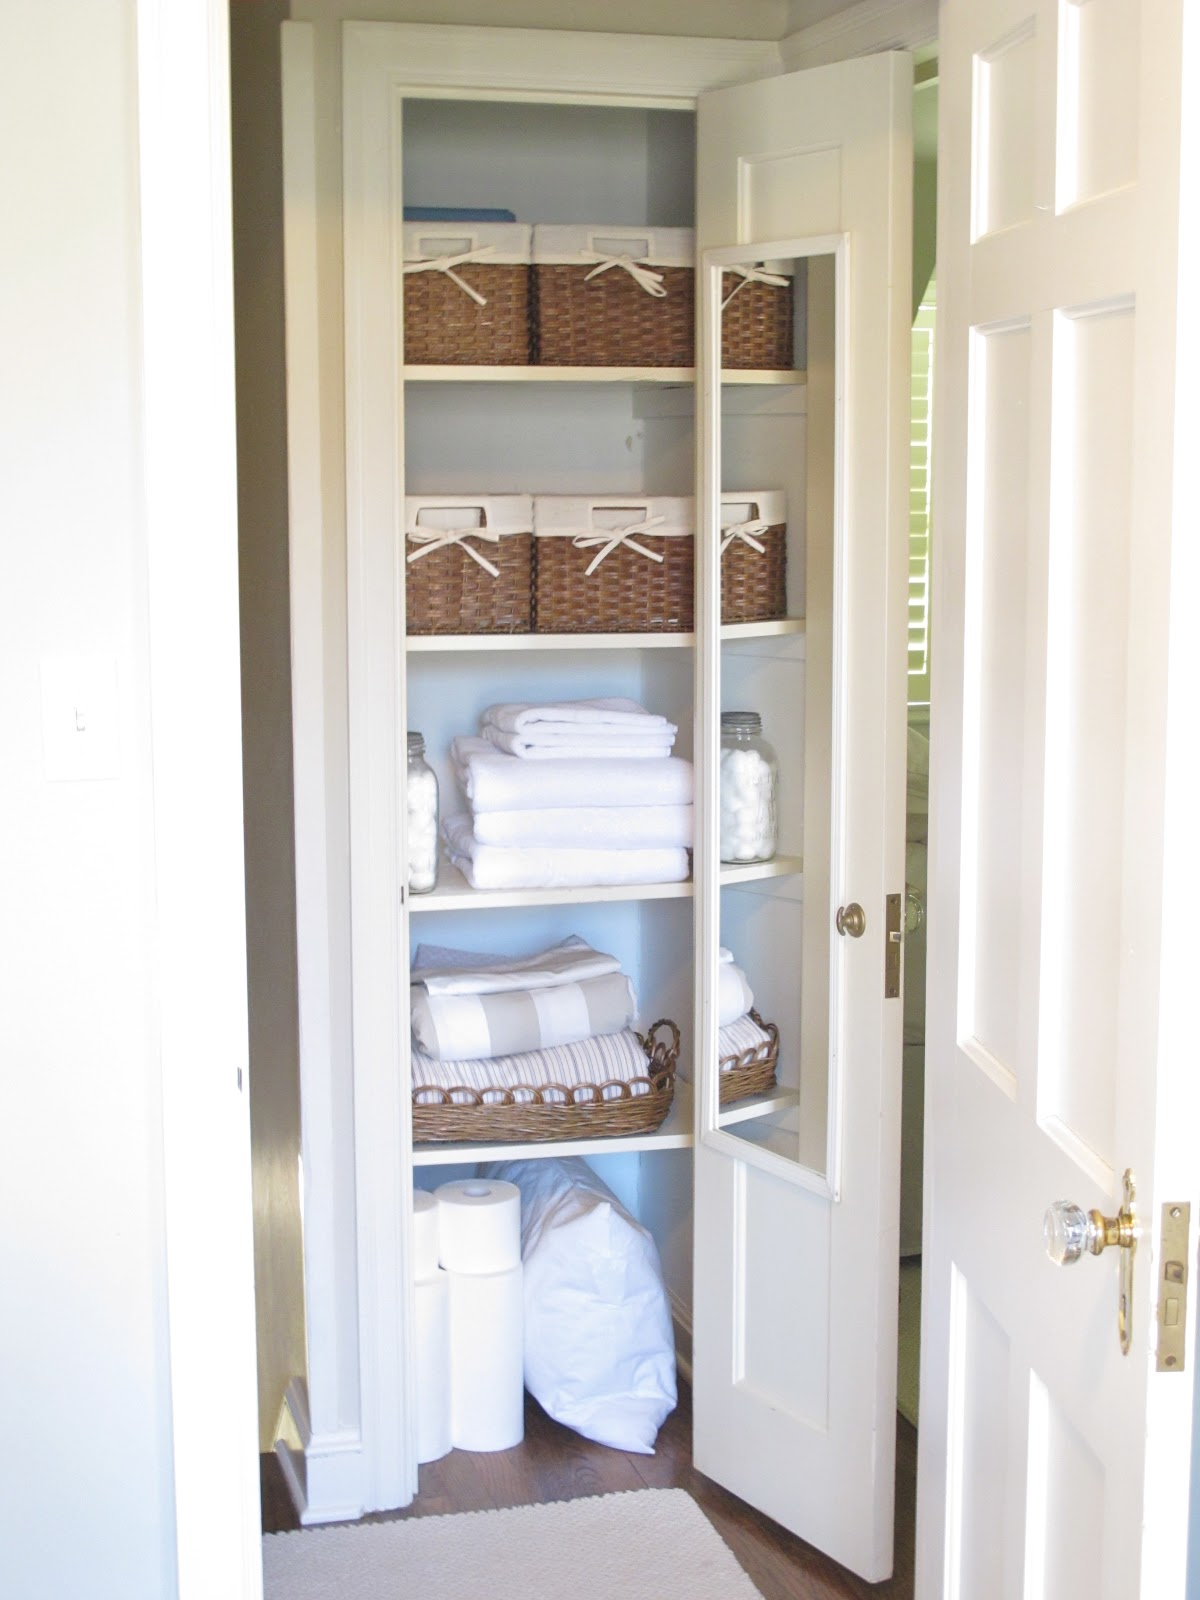 airing cupboard designs photo - 3